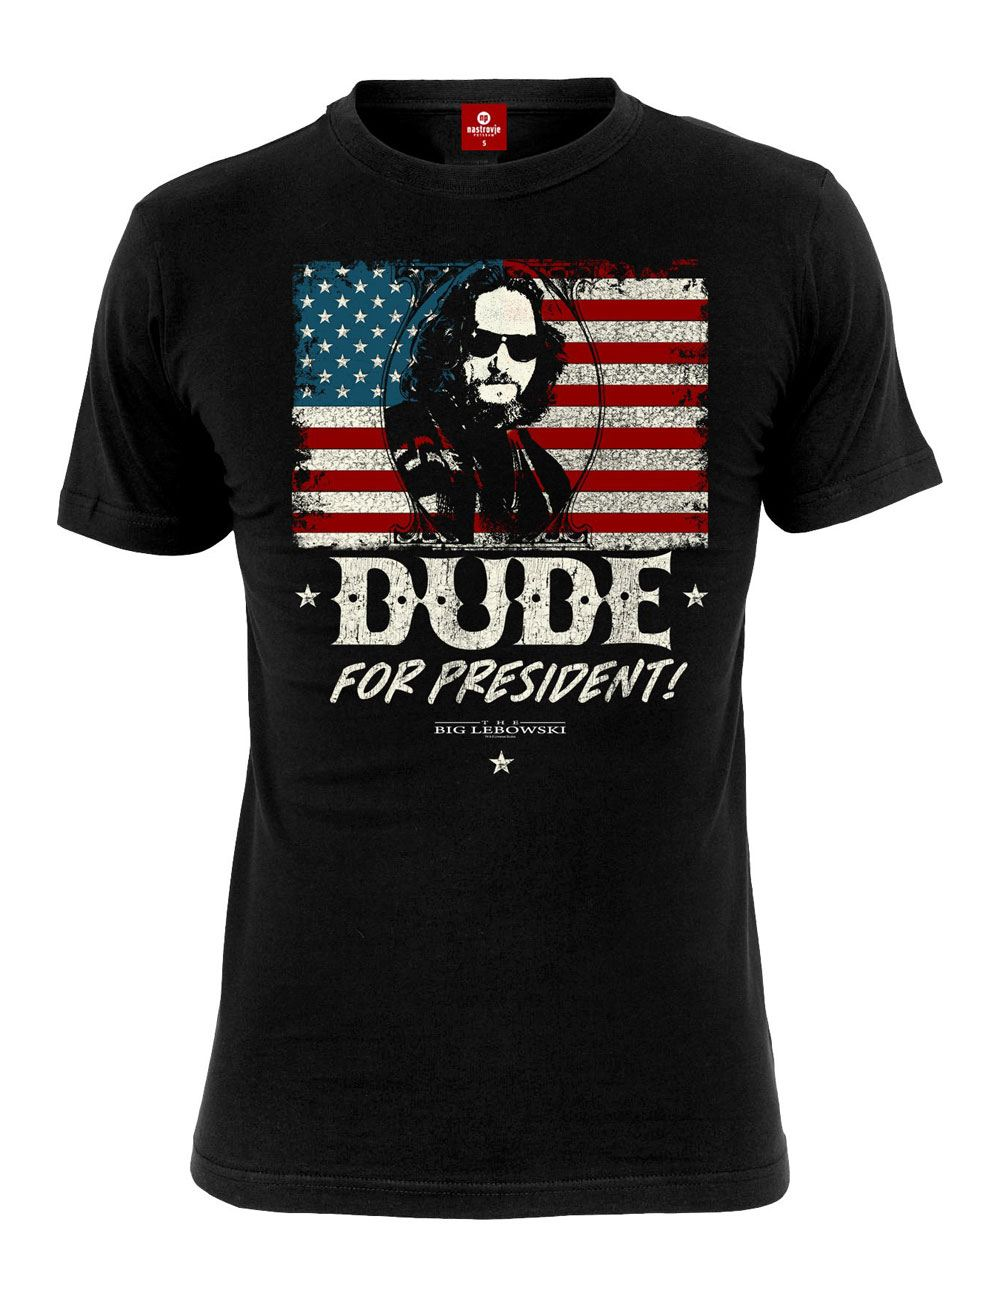 The Big Lebowski T-Shirt Dude for President Size S